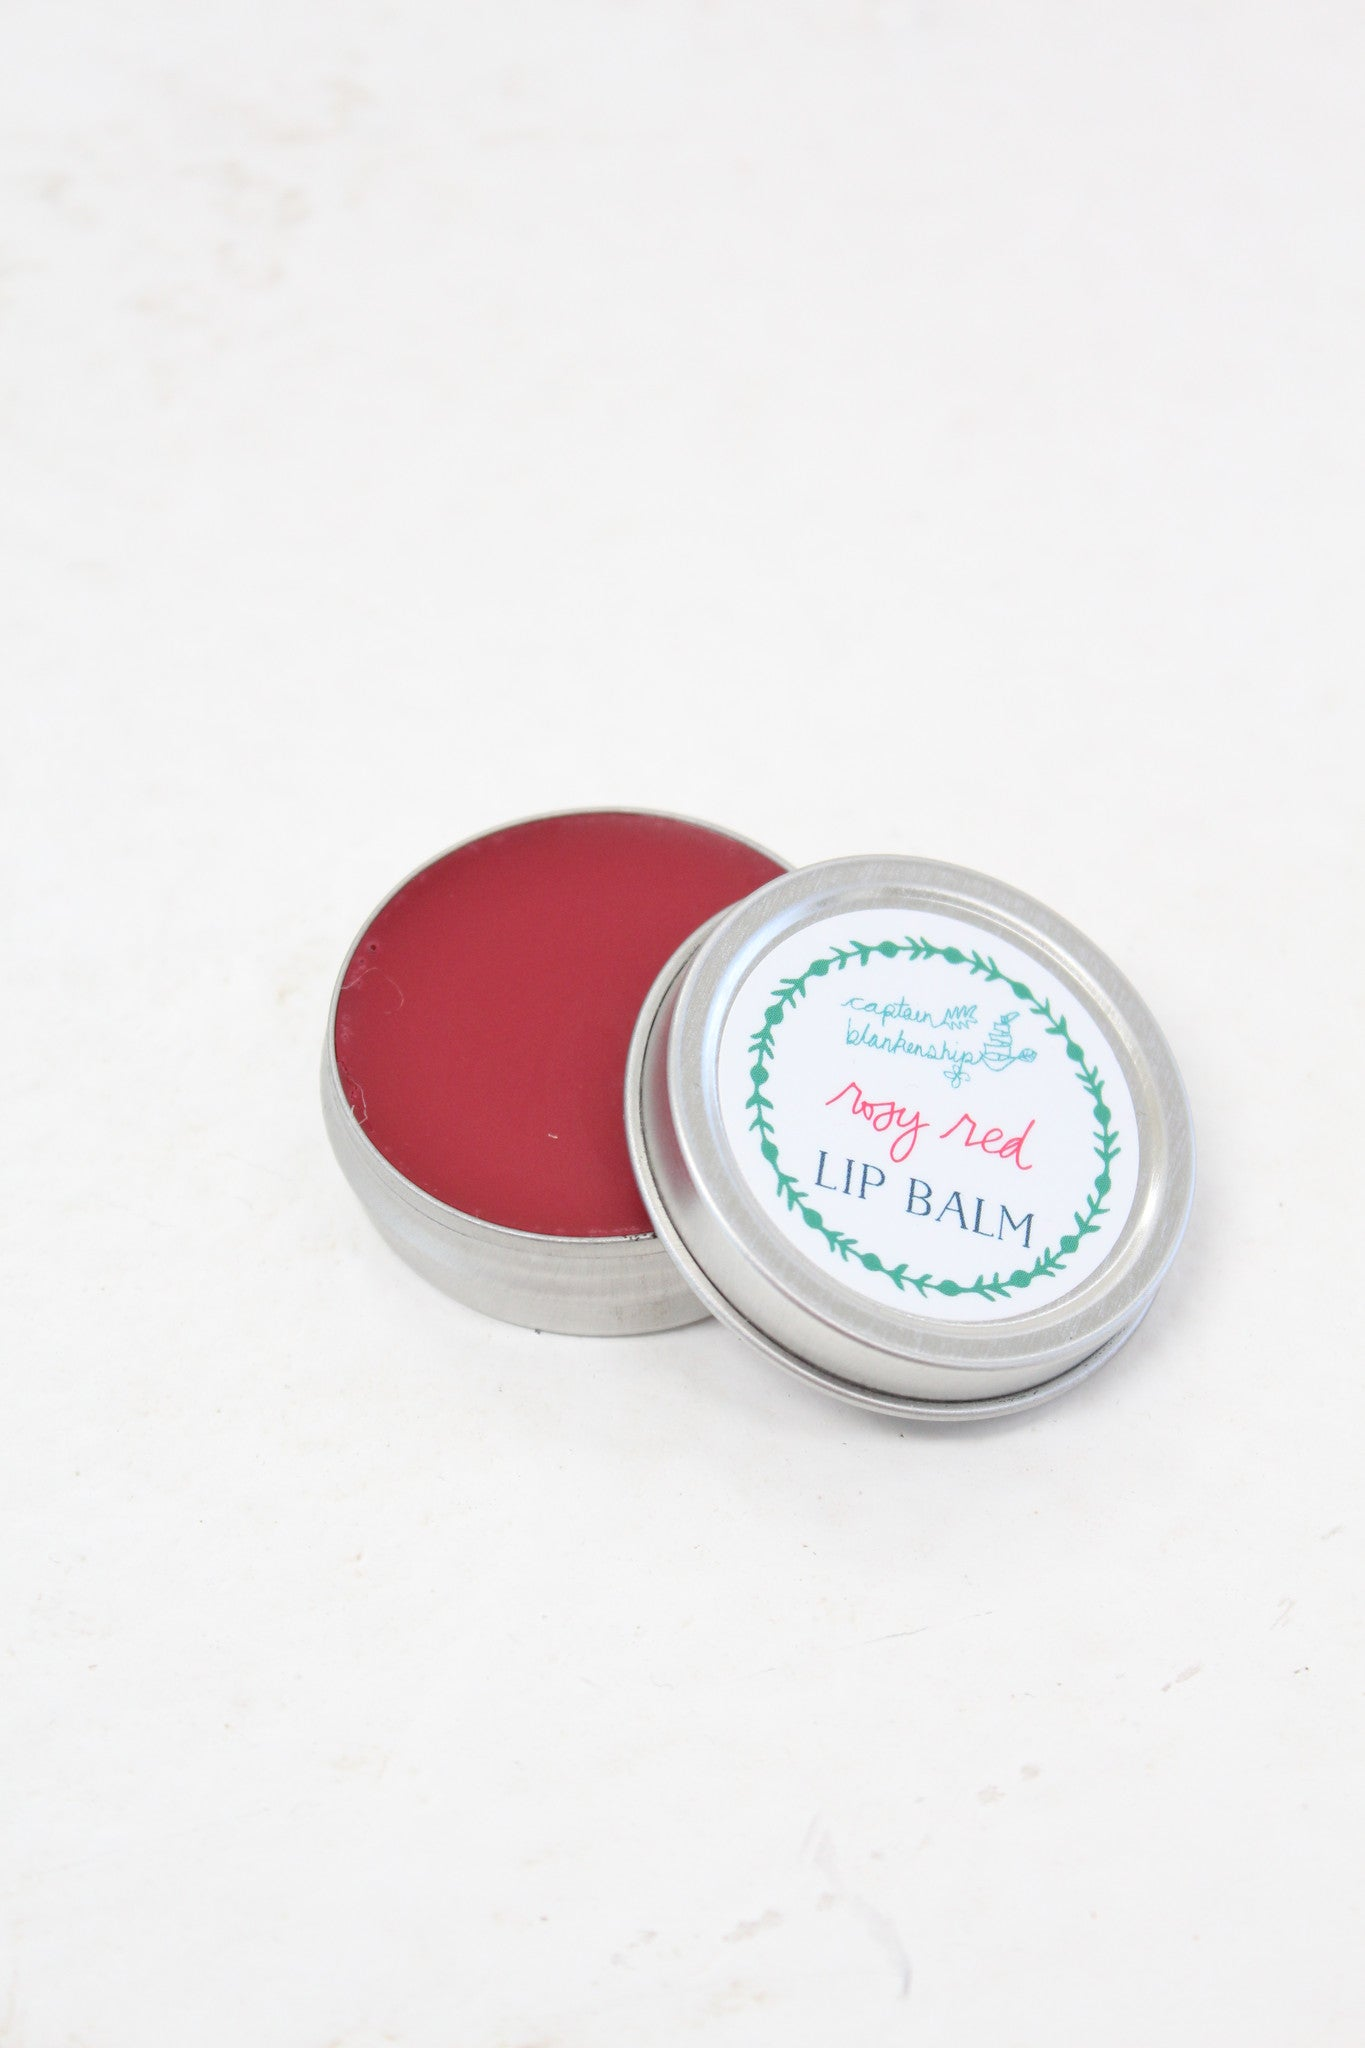 Captain Blackenship Lip Balm